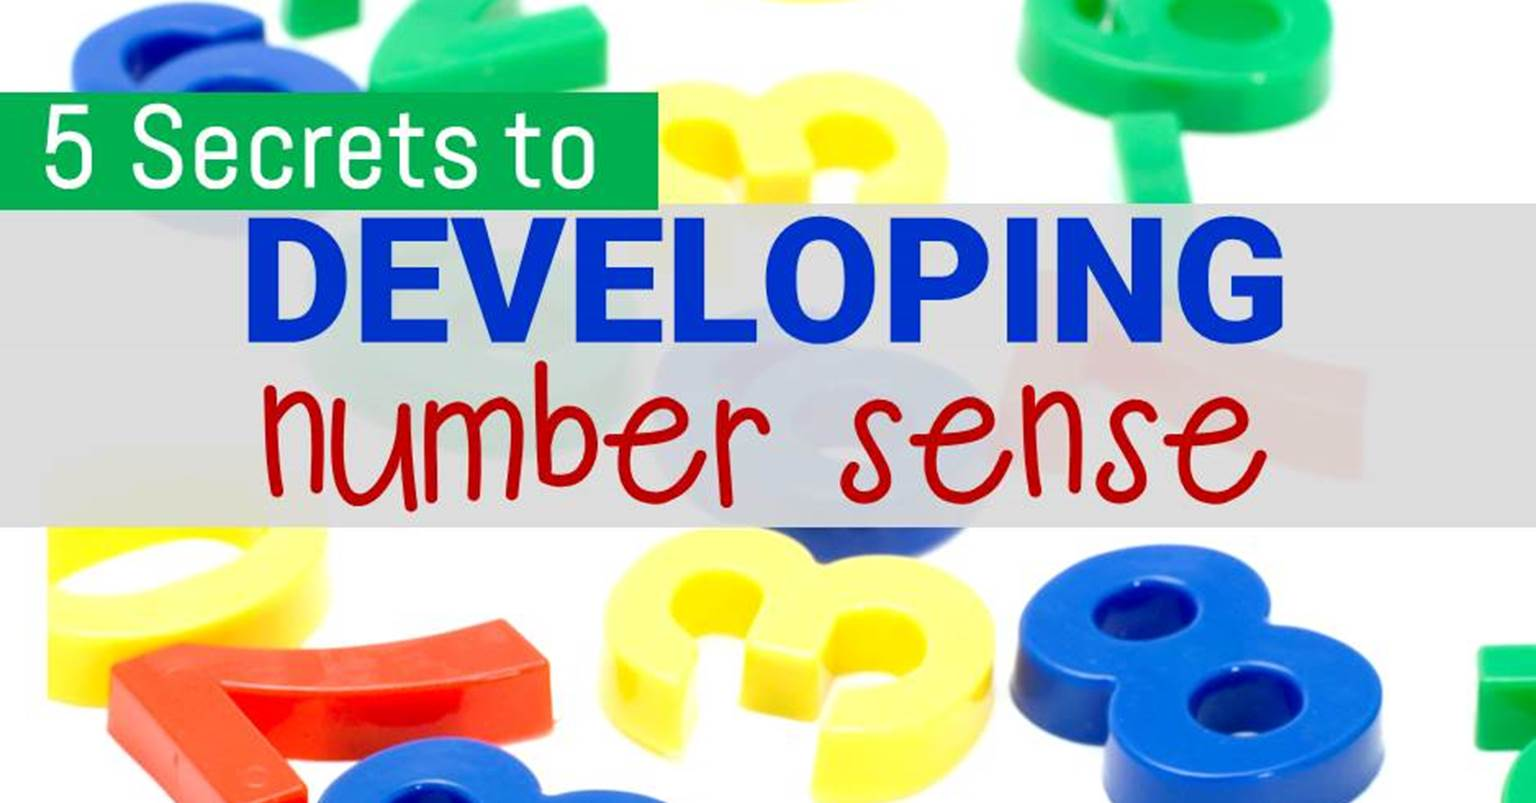 The Secrets Of Developing Number Sense